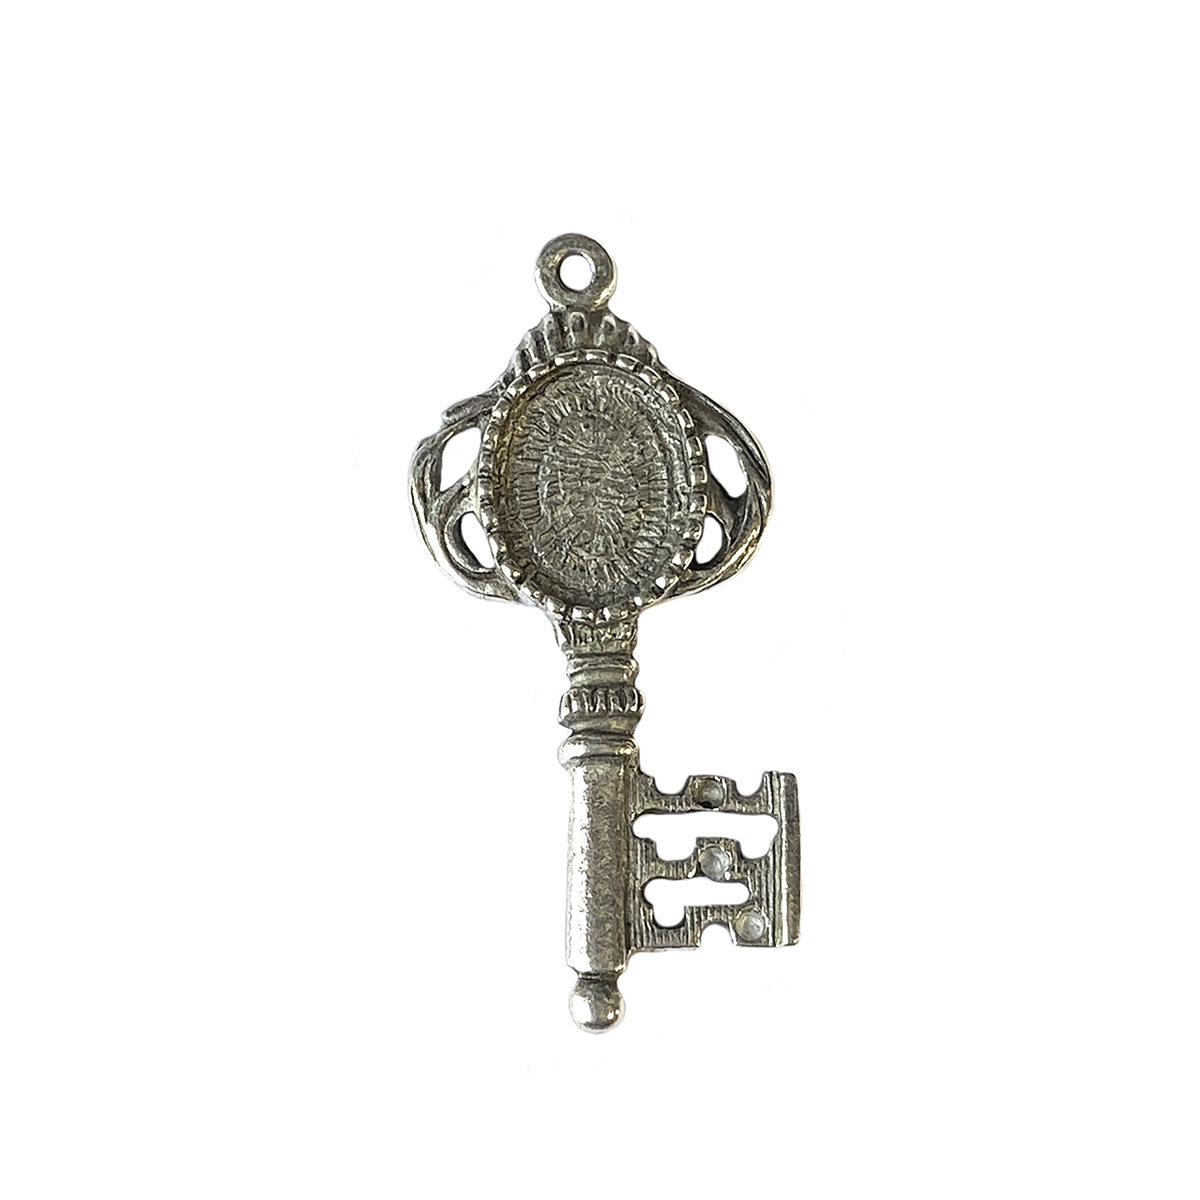 Old silver pewter key lead free pewter 01025 key pendant lead larger photo email a friend mozeypictures Image collections